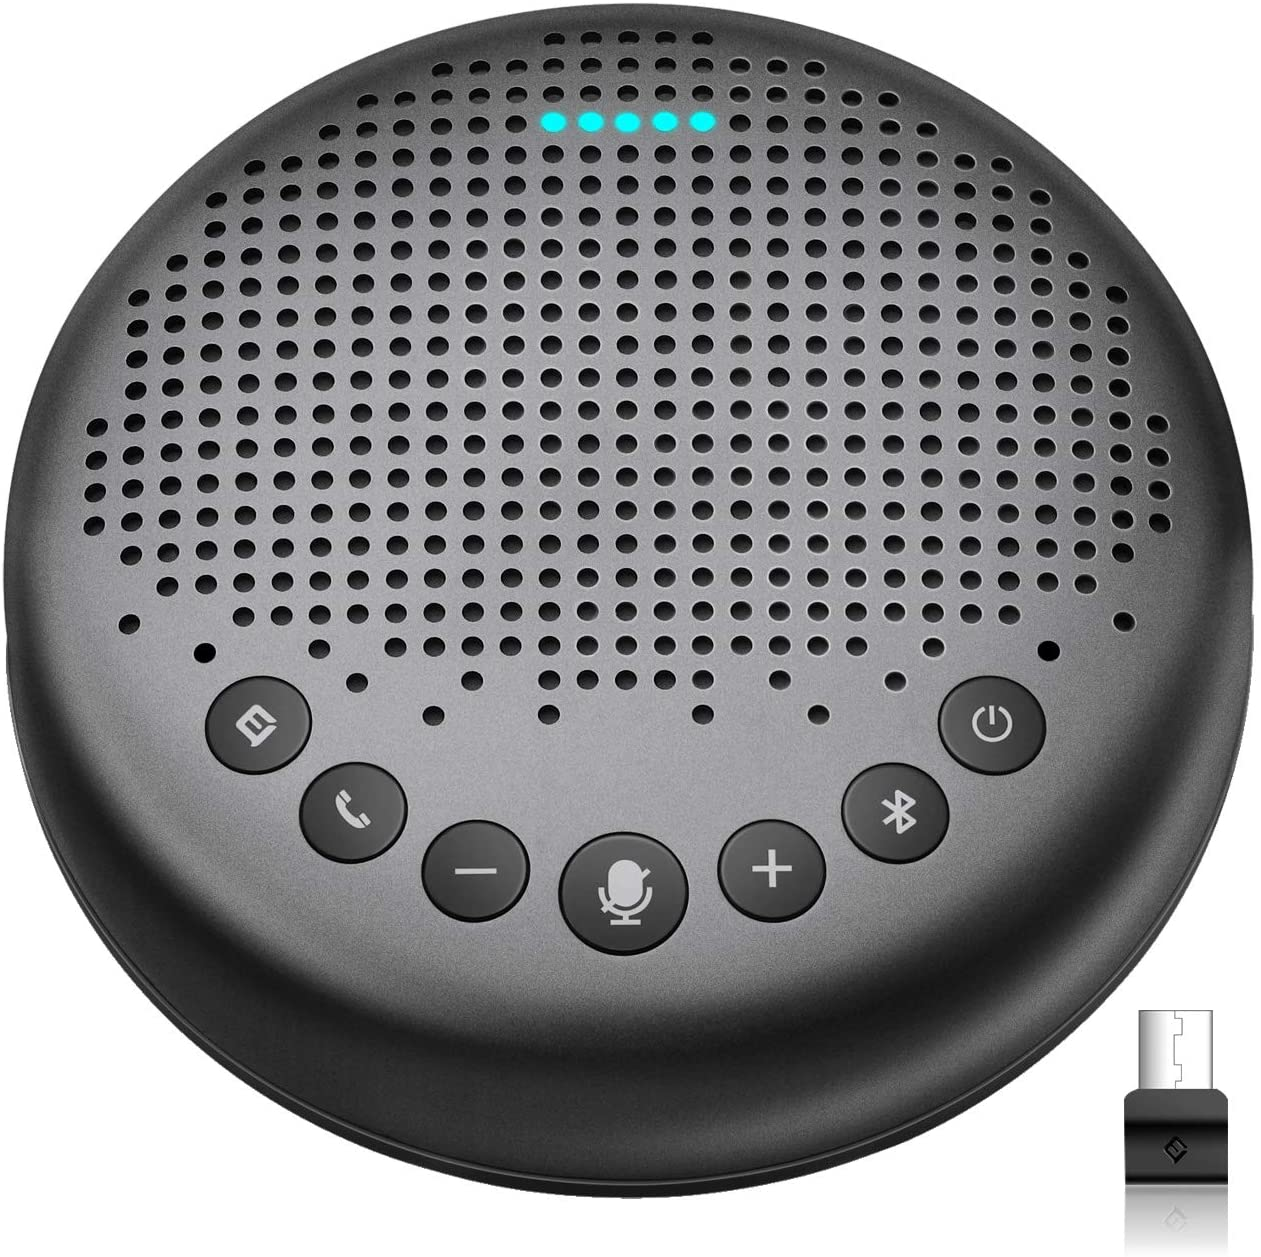 eMeet Luna Bluetooth Conference Speakerphone Review